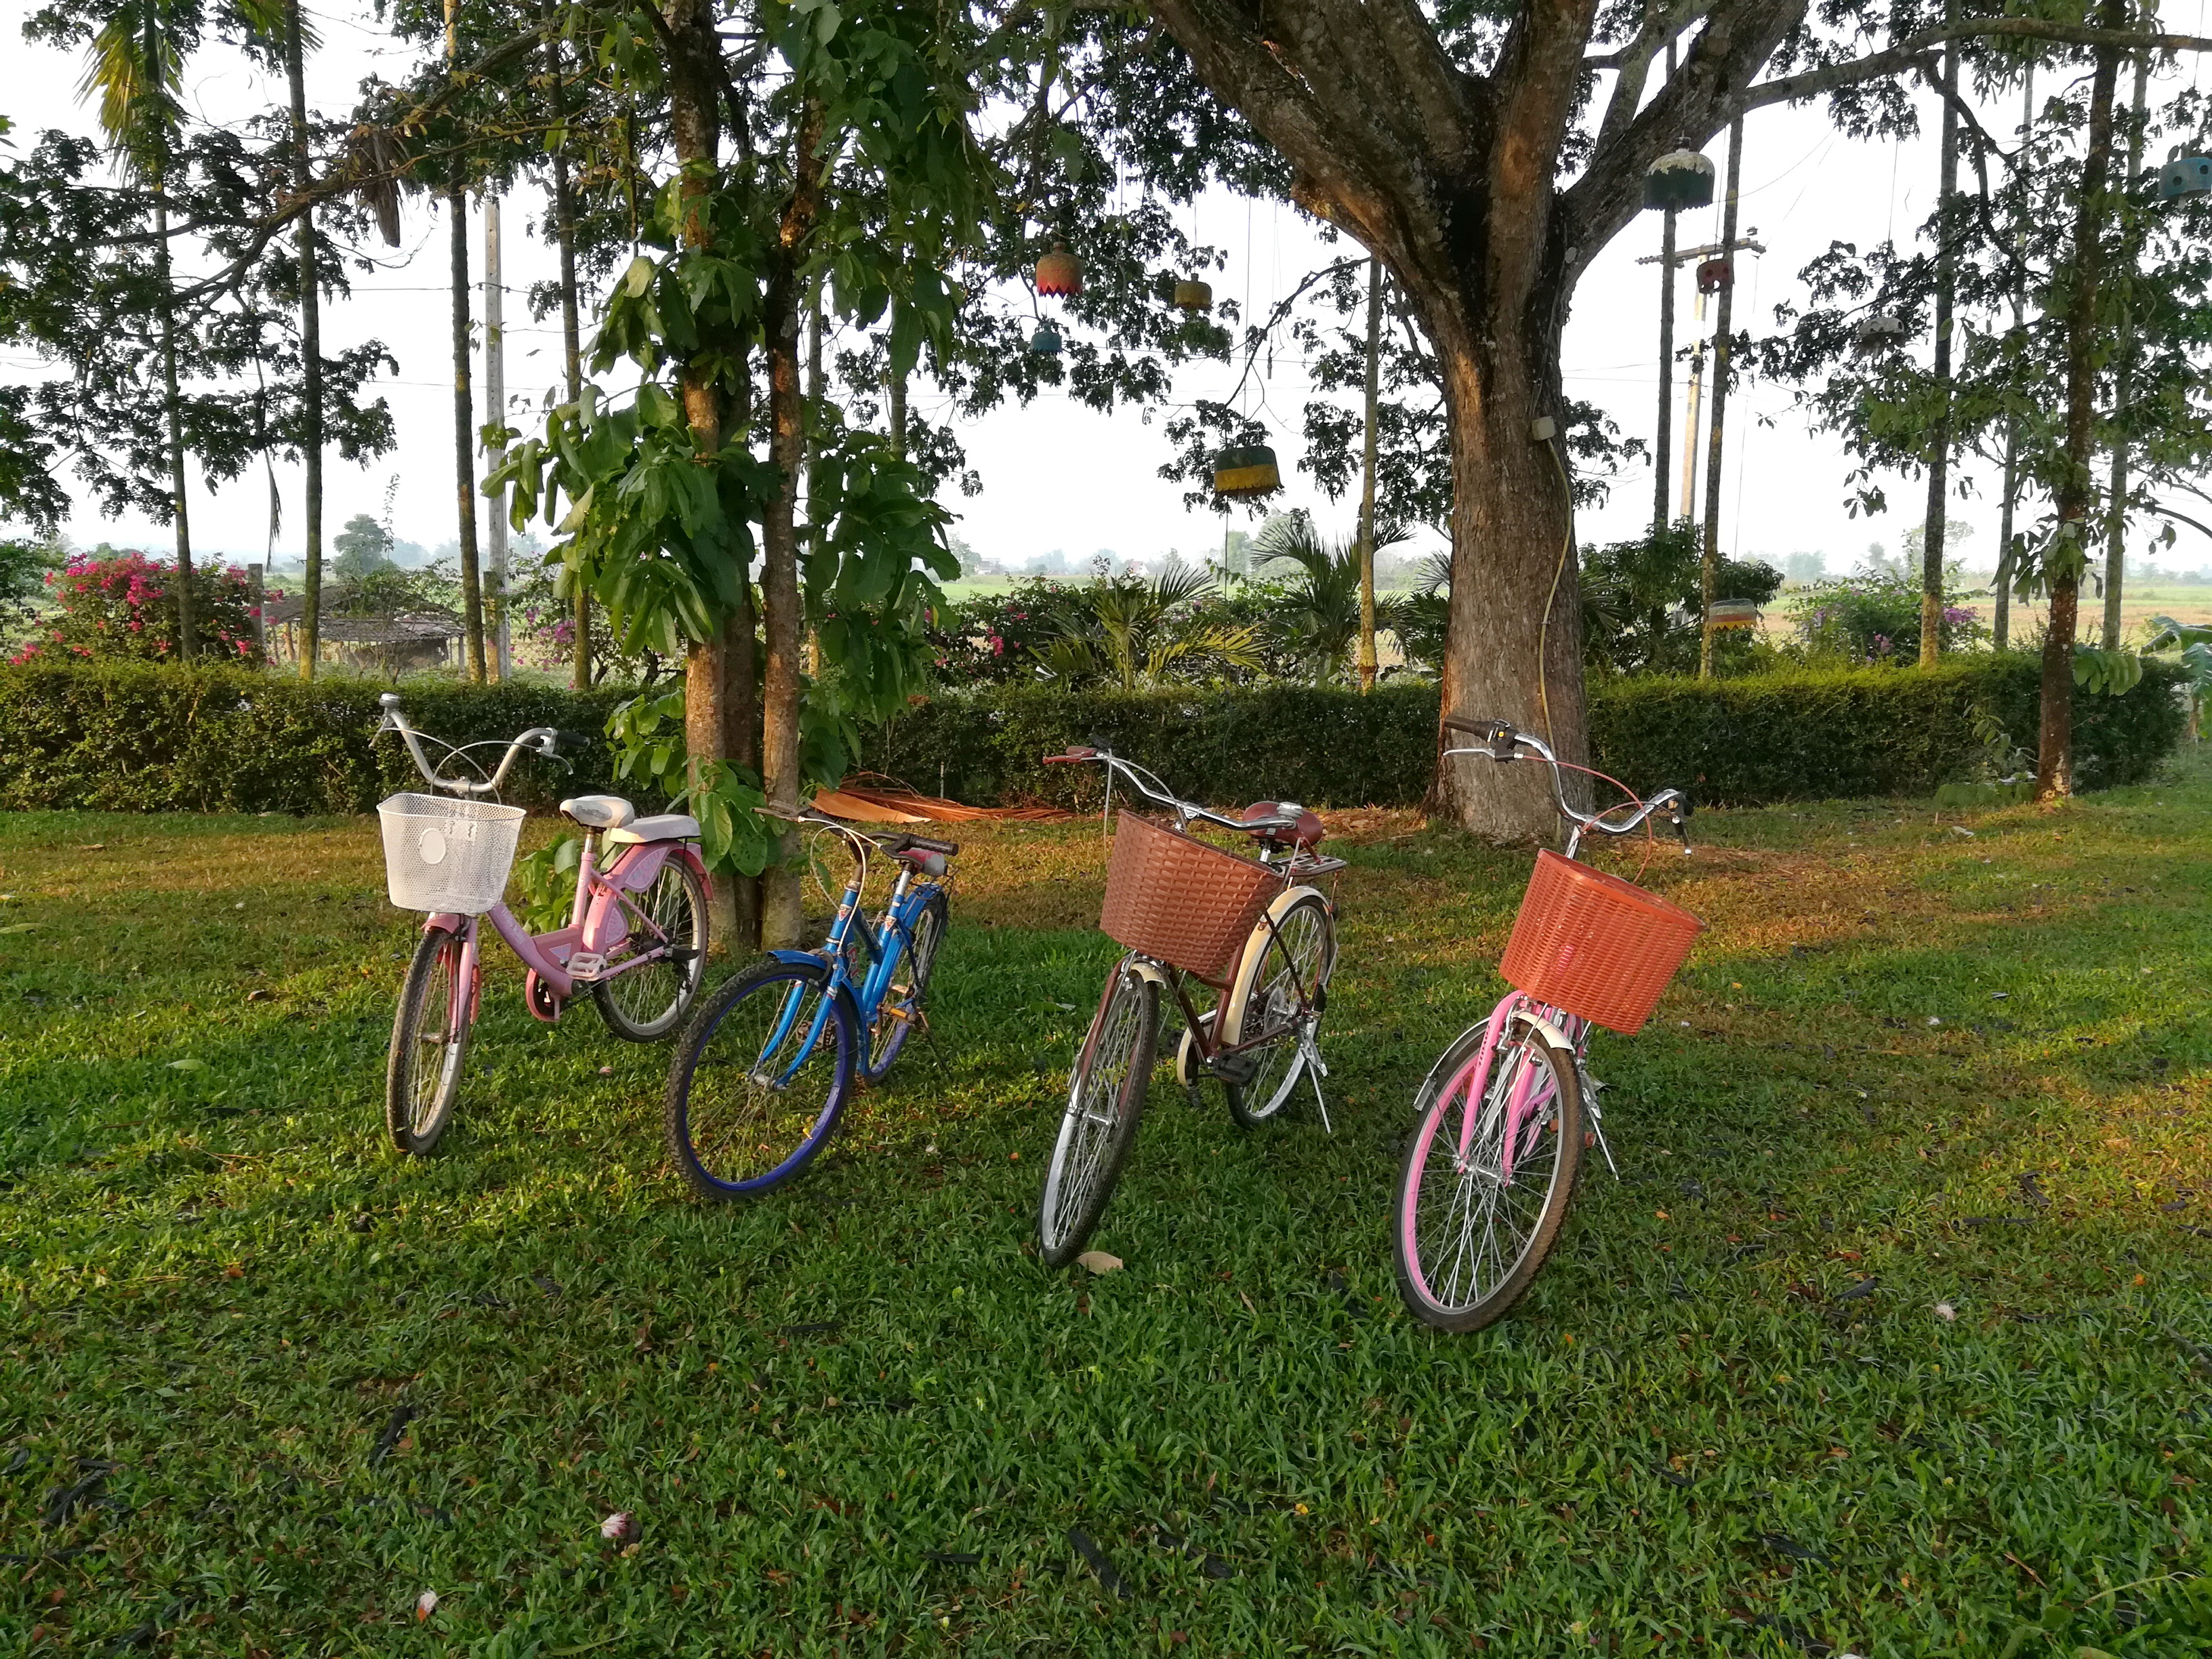 Street Bicycle and Children Bicycle Rent a Bicycle